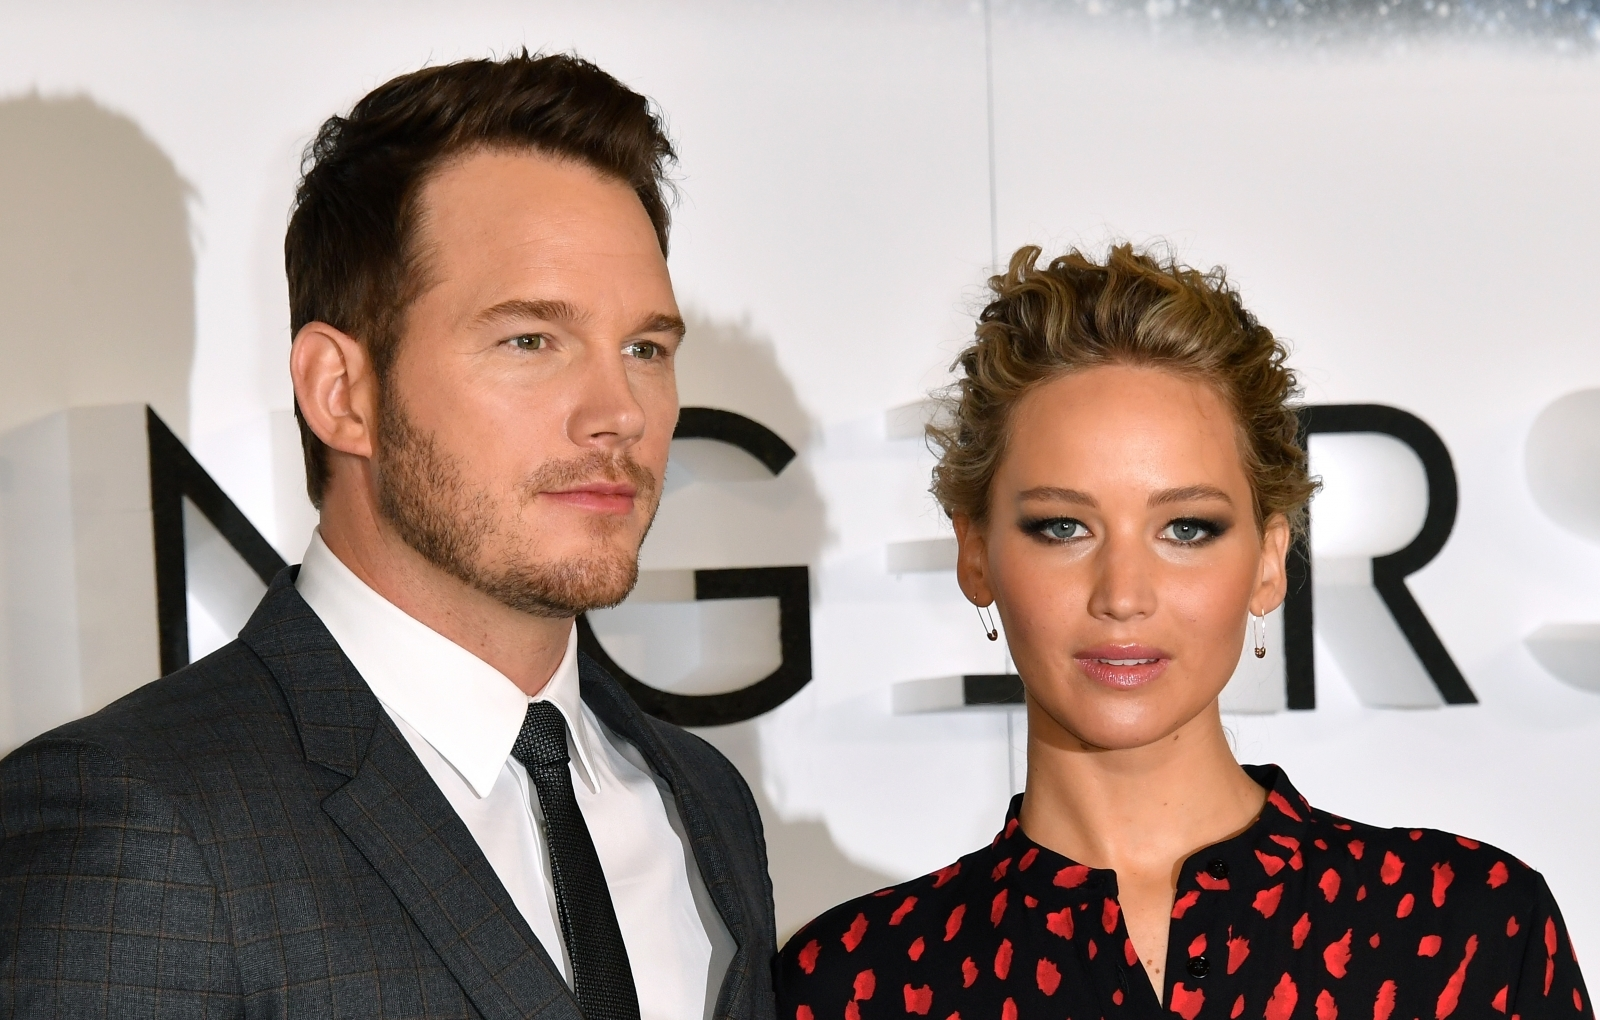 Fans blame Jennifer Lawrence for Chris Pratt and Anna Faris split: 'Bitch has a role in everything'